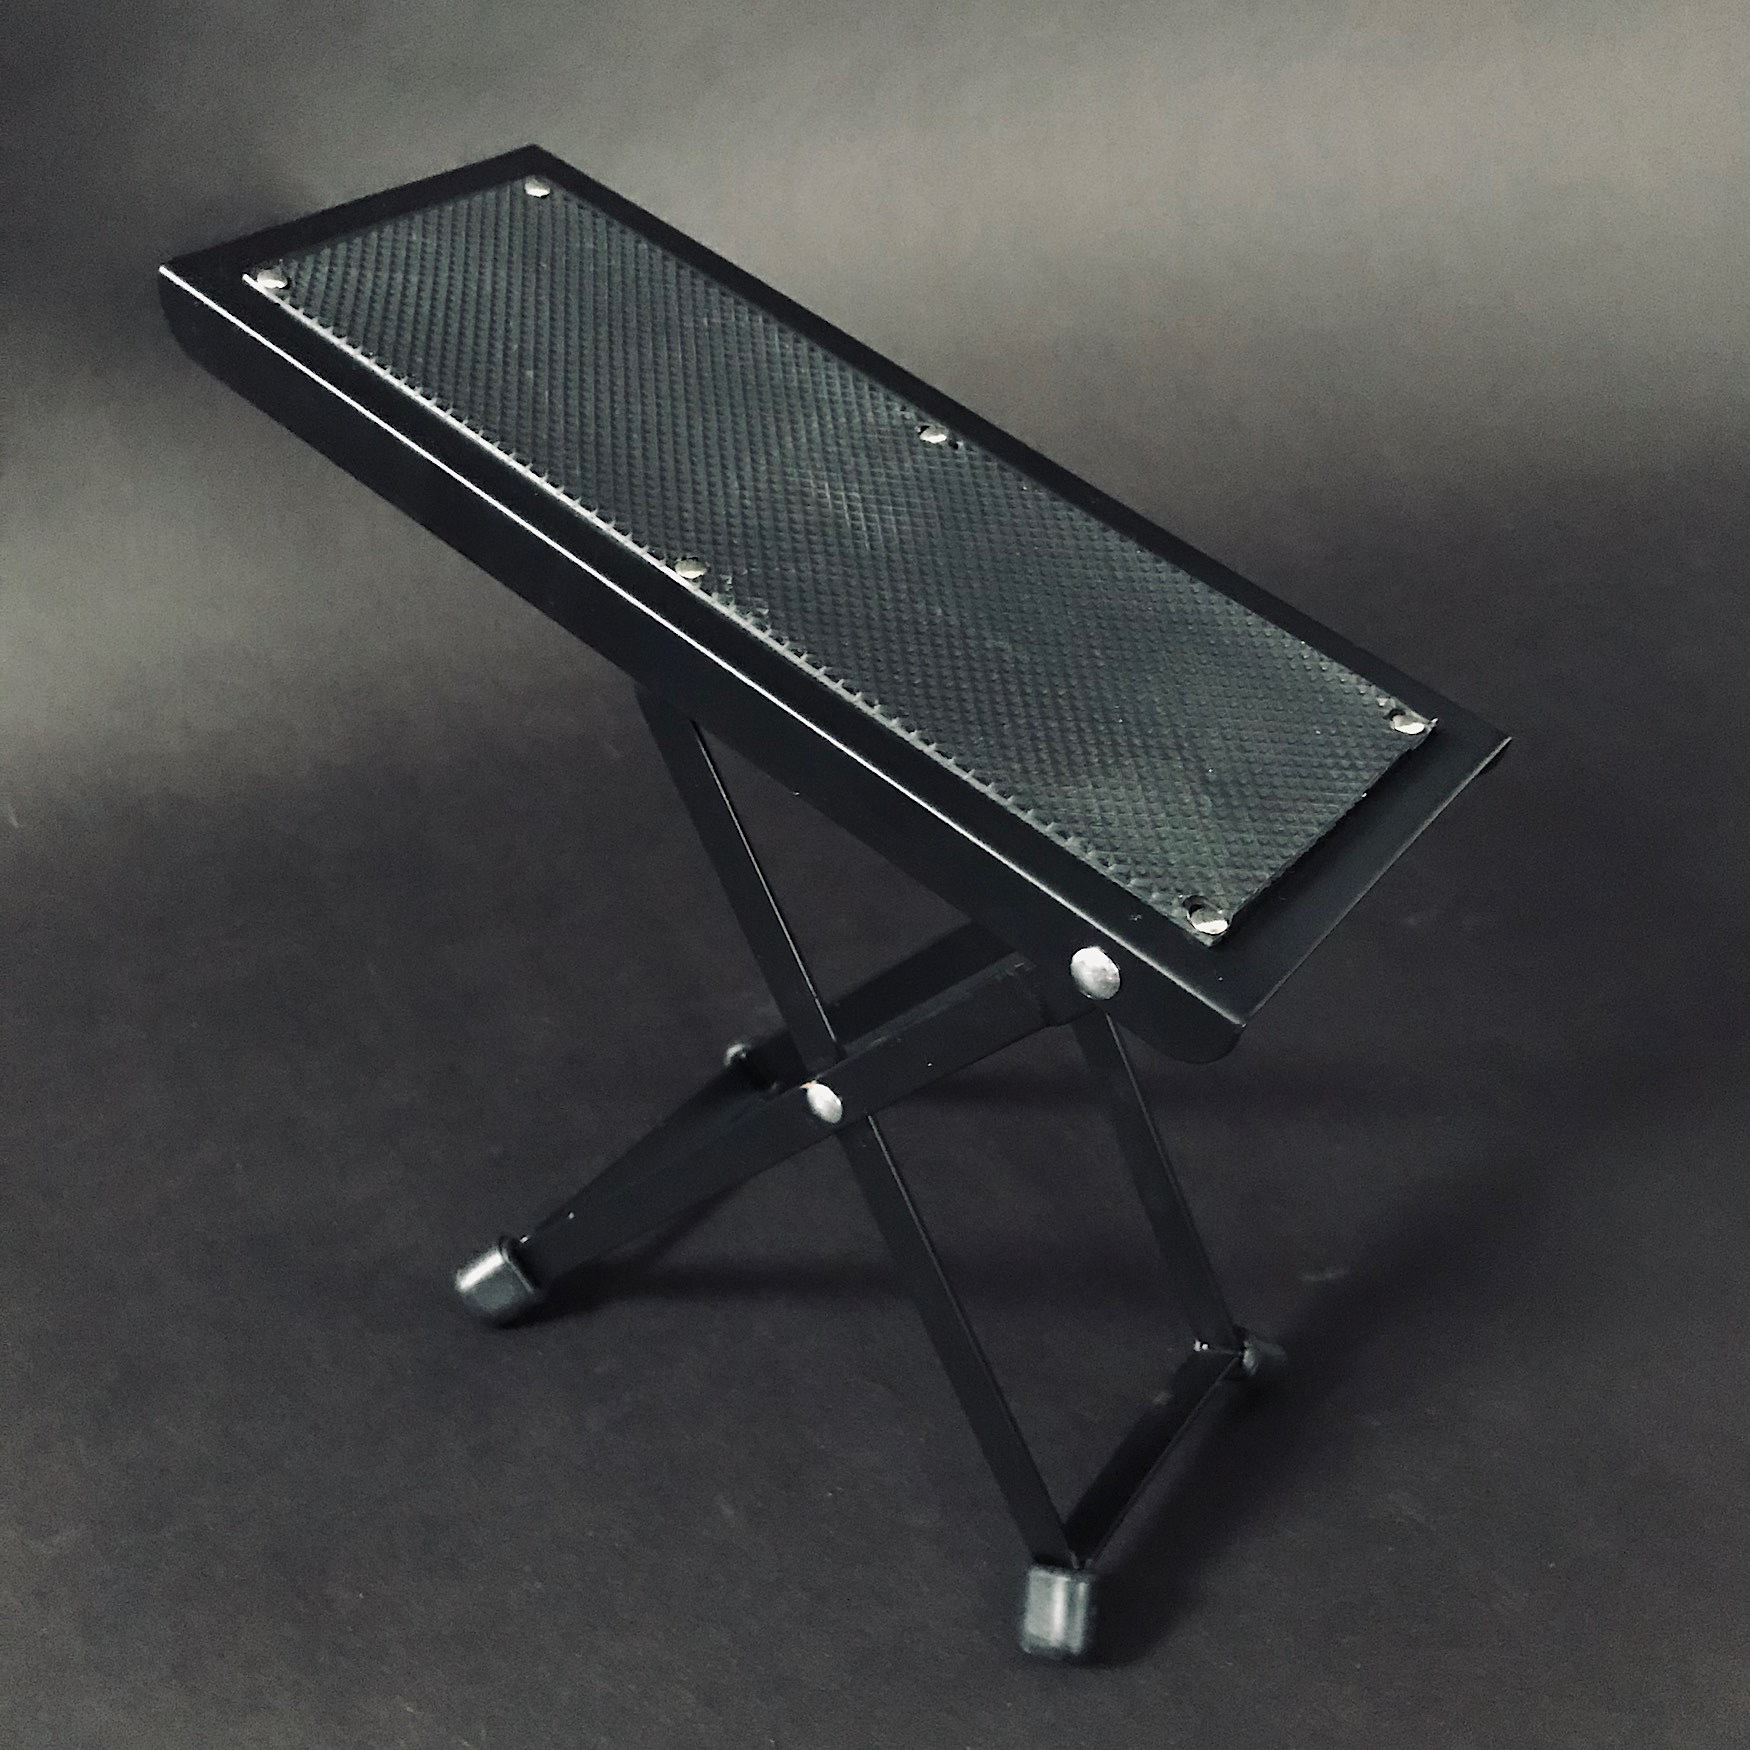 Guitarist's Adjustable Footstool - New Stock